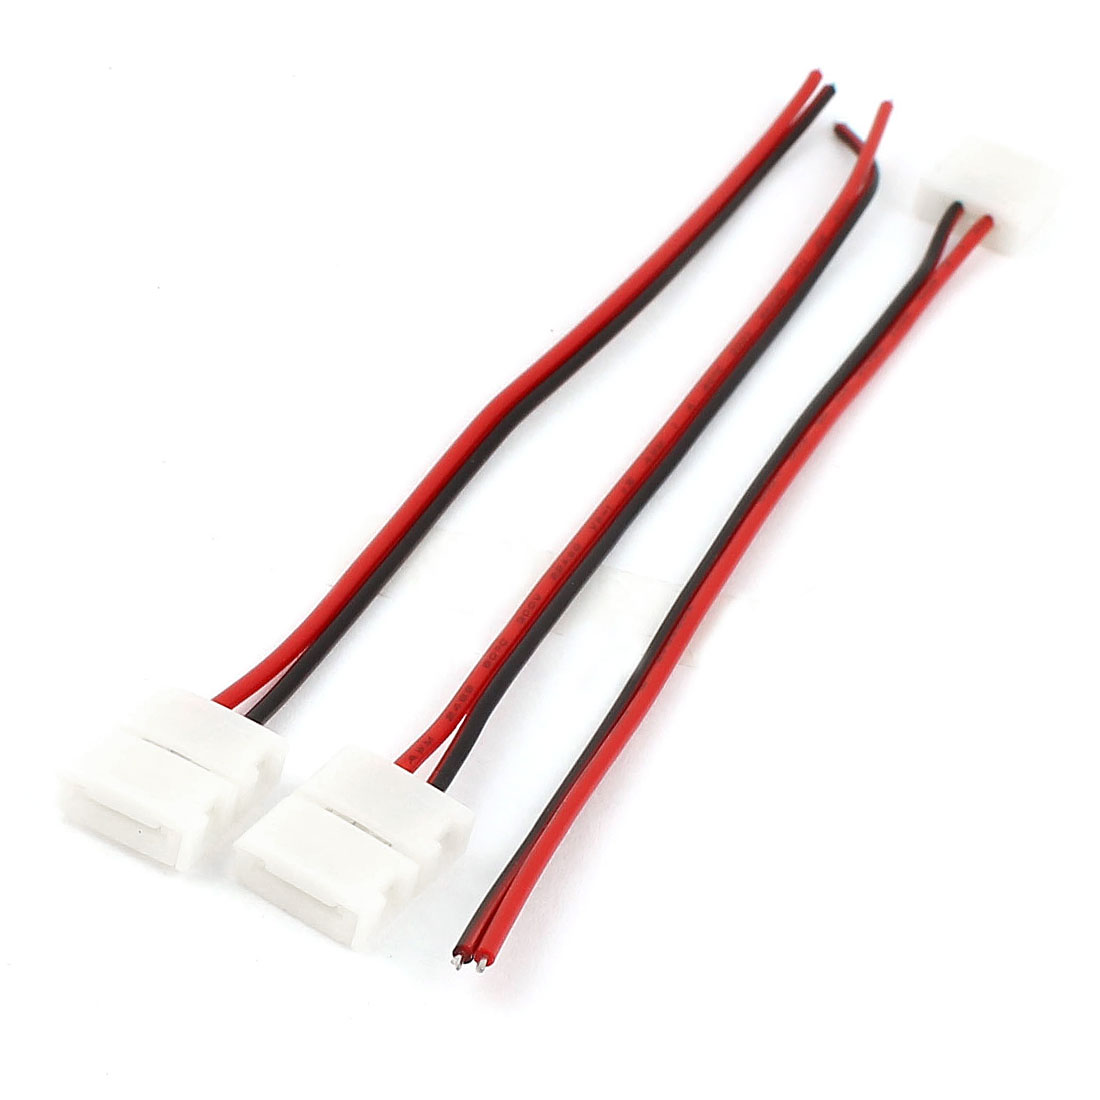 3pcs 15cm Long 8mm Width 2 Pole Wire Connector for 3528 Strip